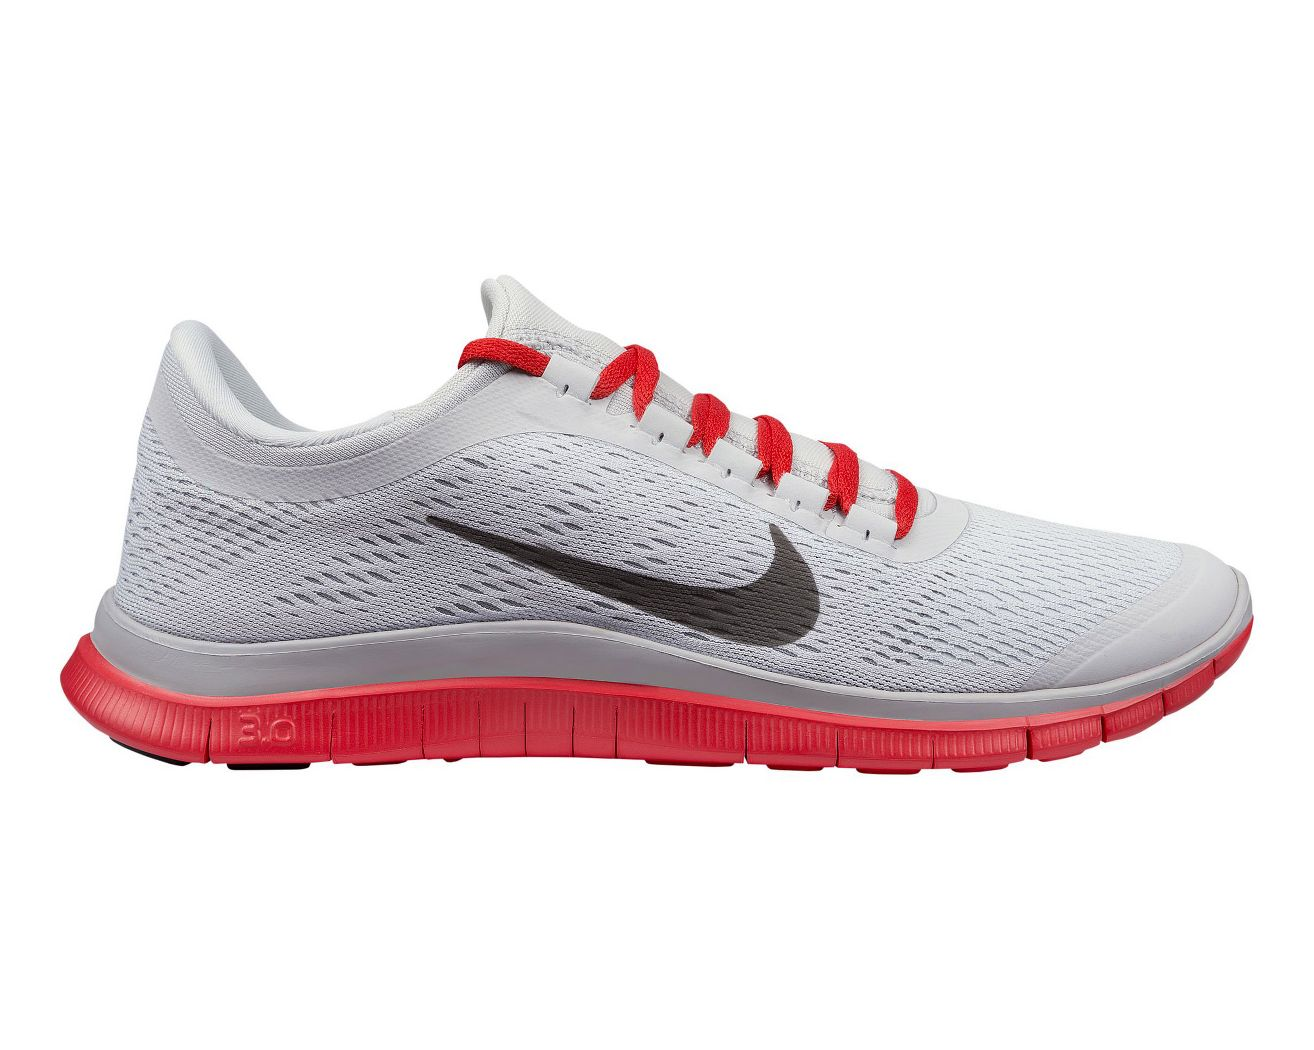 Nike Free Run 3.0 V5 Womens Running Shoes Grey / White / Orange